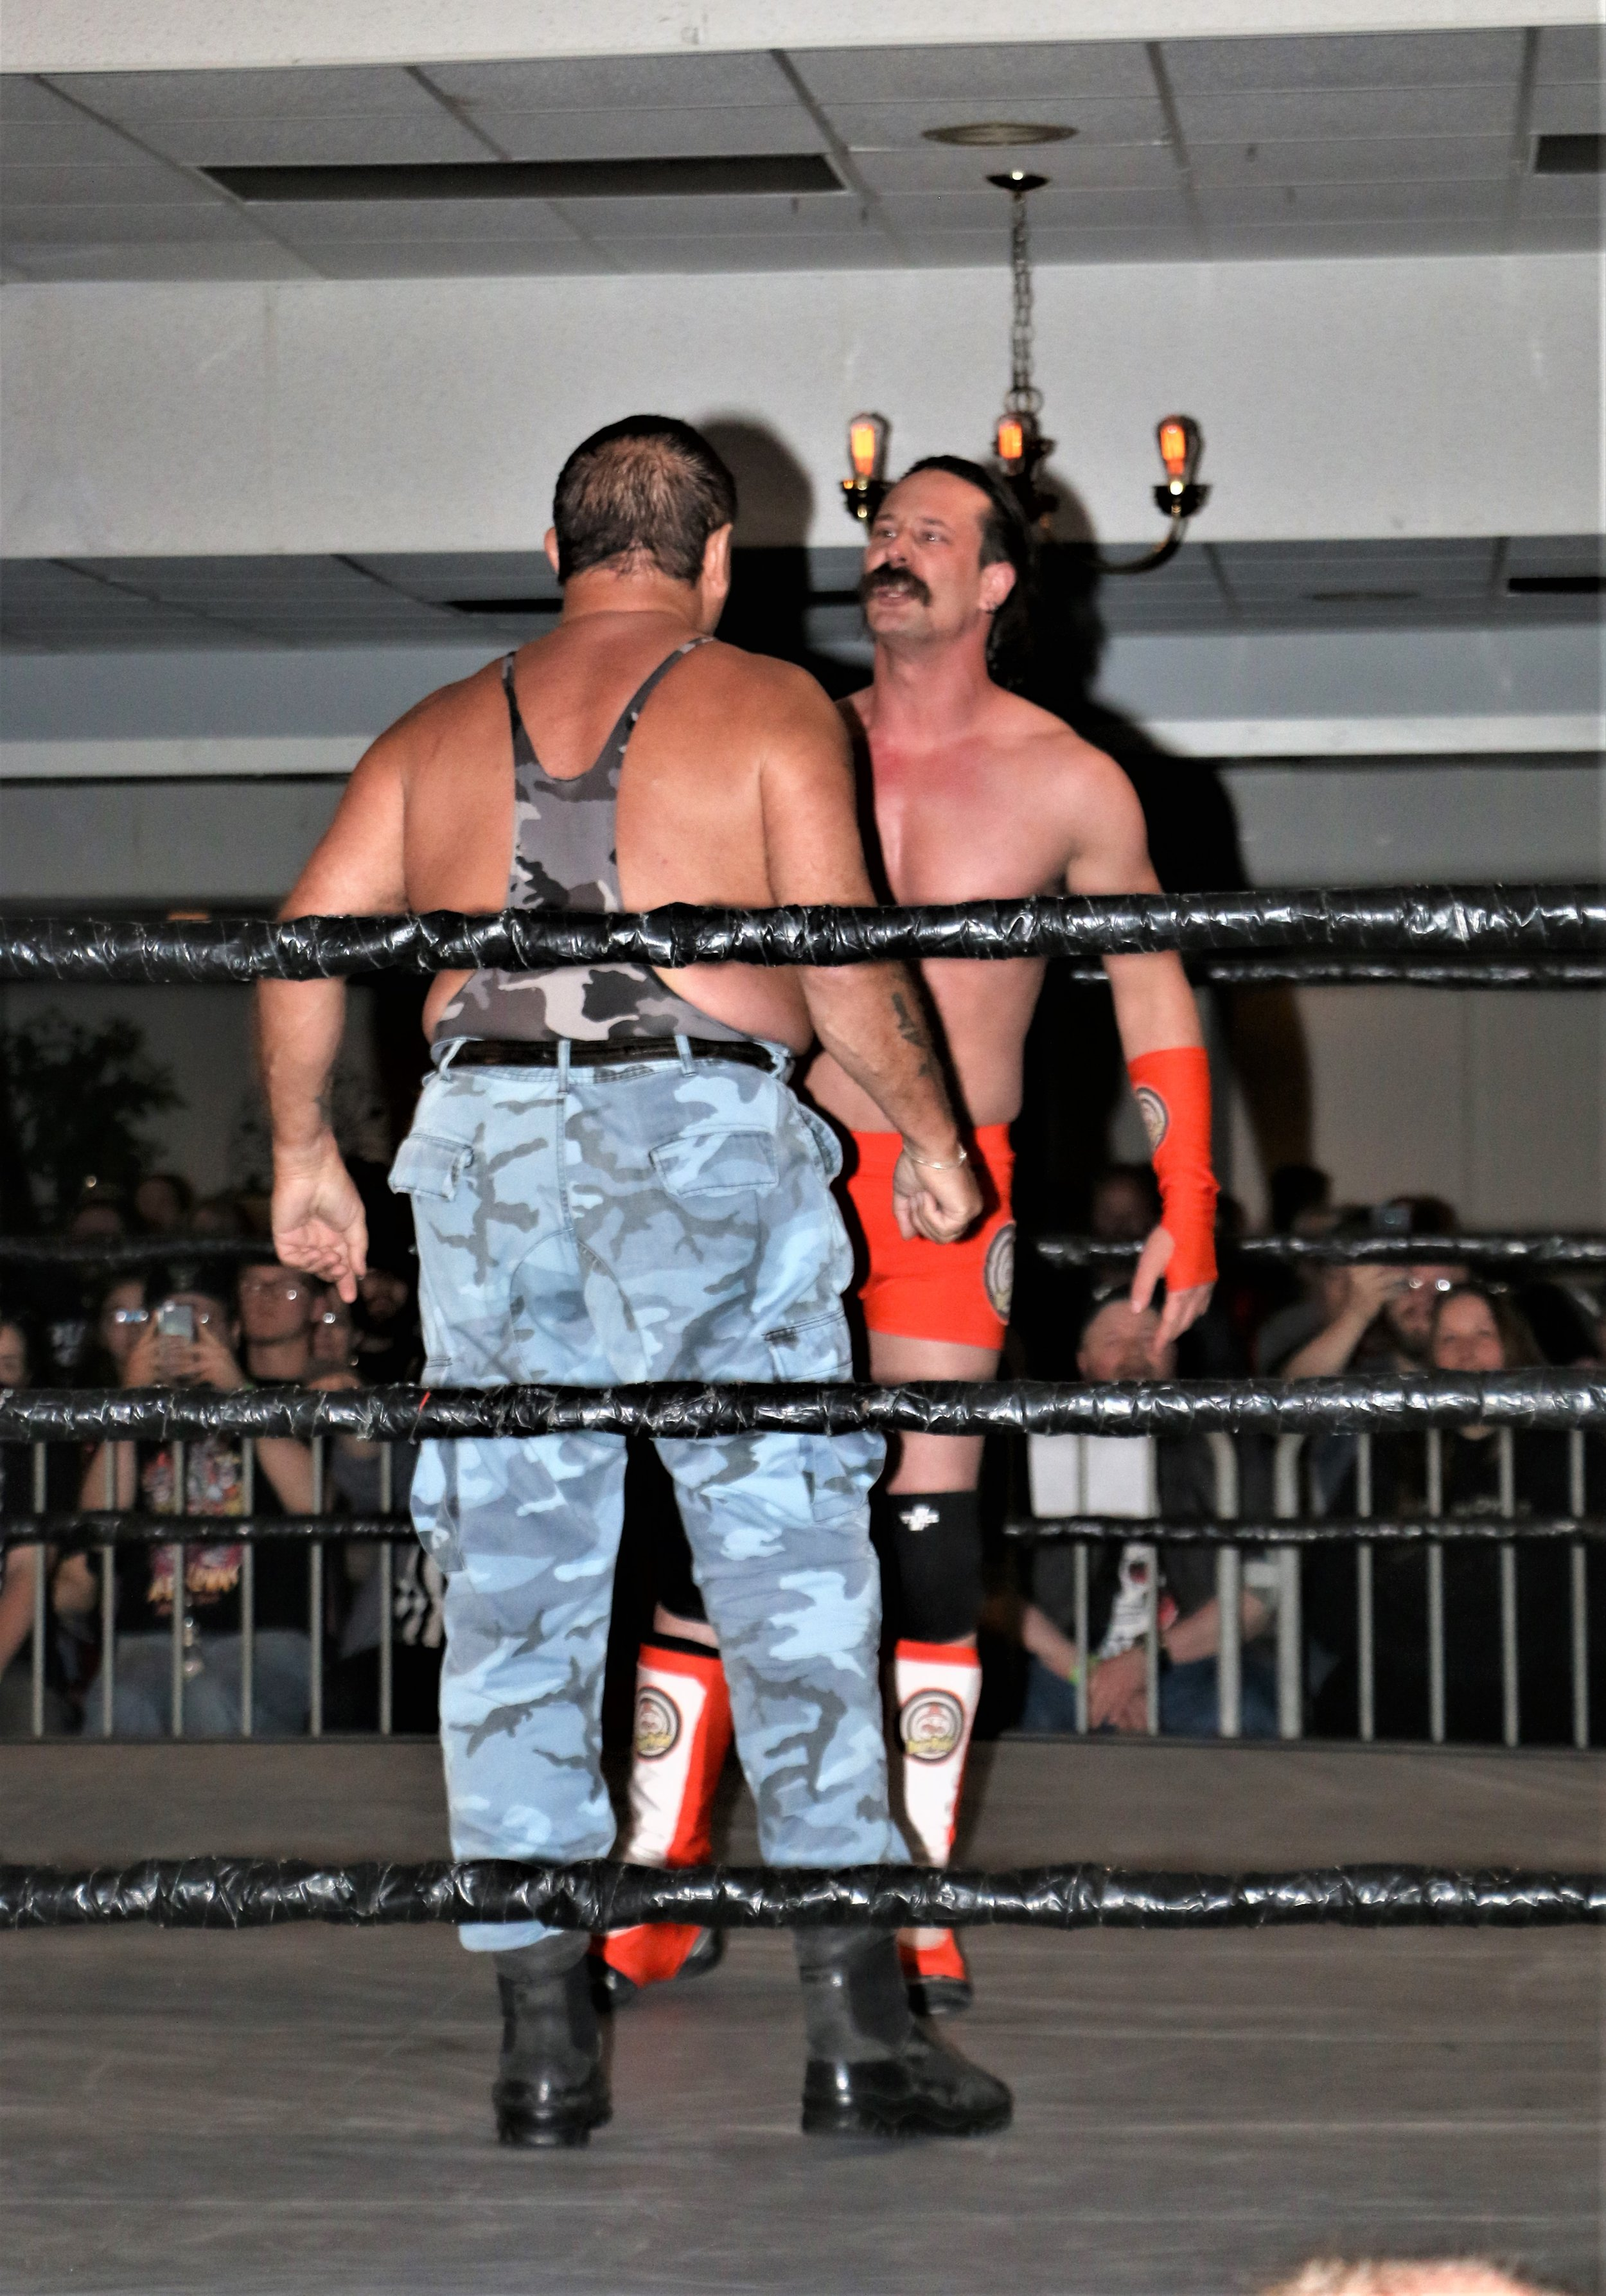 Bushwhacker Luke goes face-to-face with Dave Rydell during the six-man tag team match.